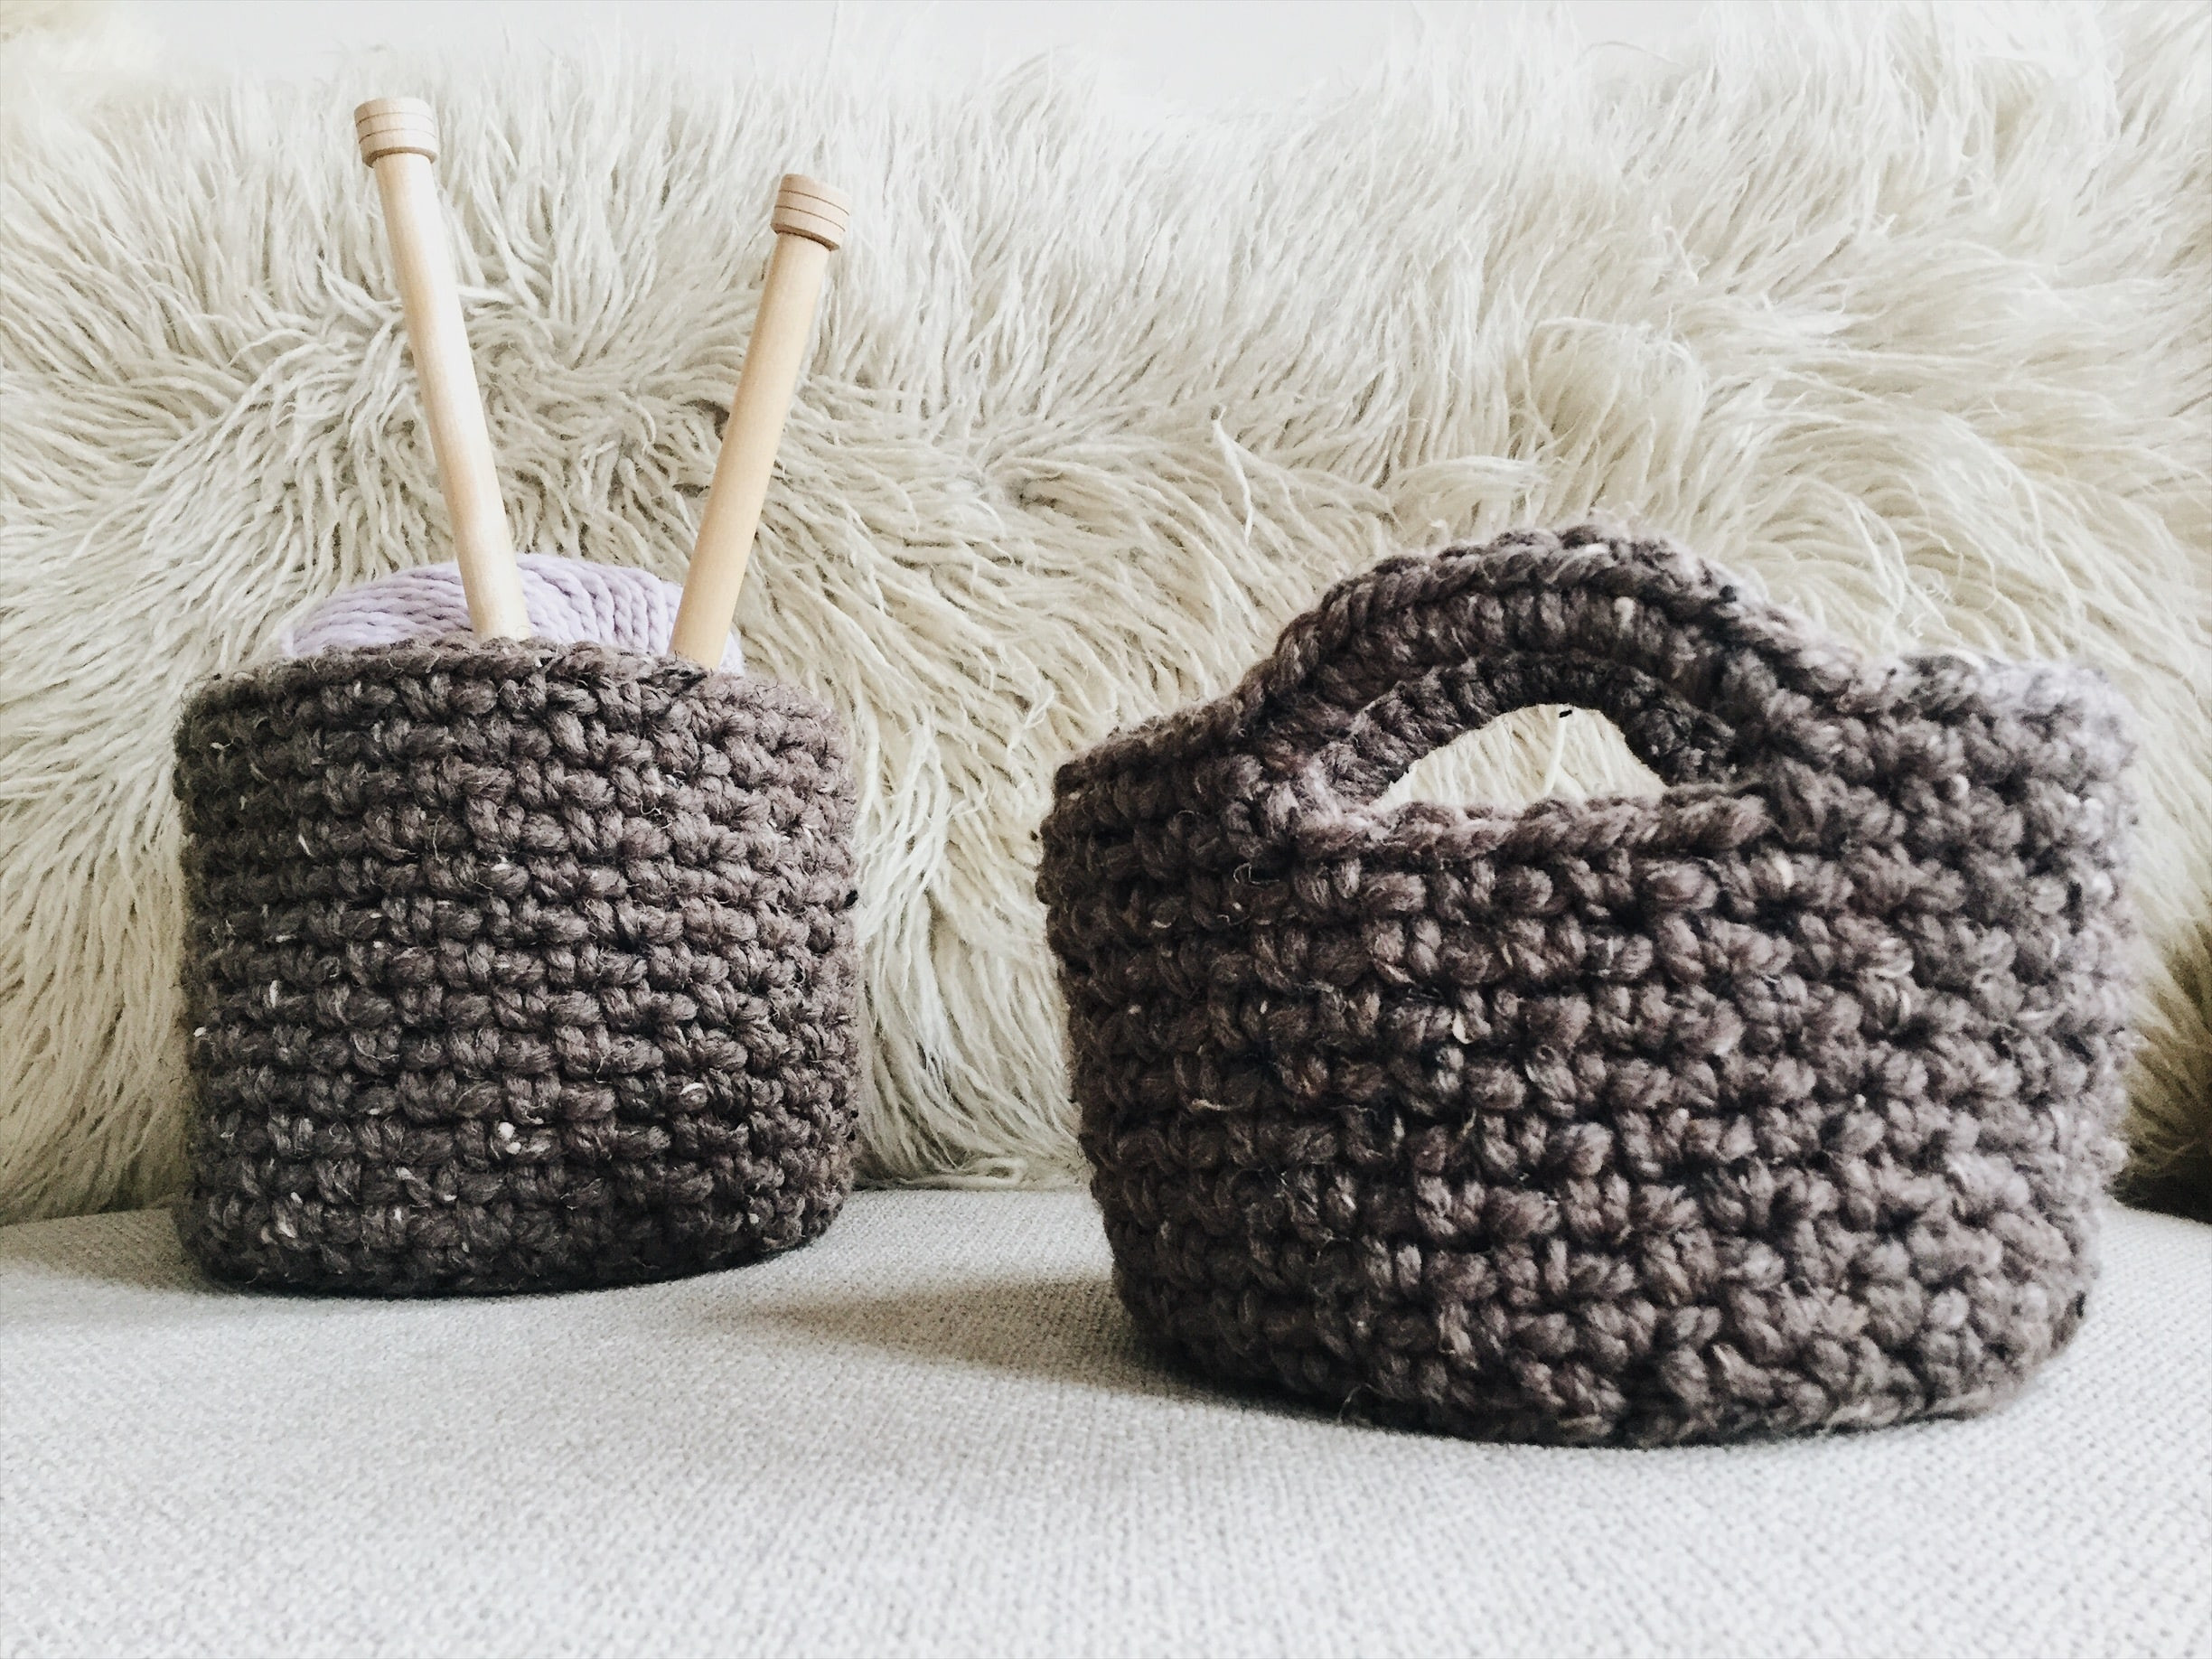 Luxury How I Made My Crochet Hanging Basket Mallooknits Crochet Hanging Basket Of Awesome 47 Photos Crochet Hanging Basket